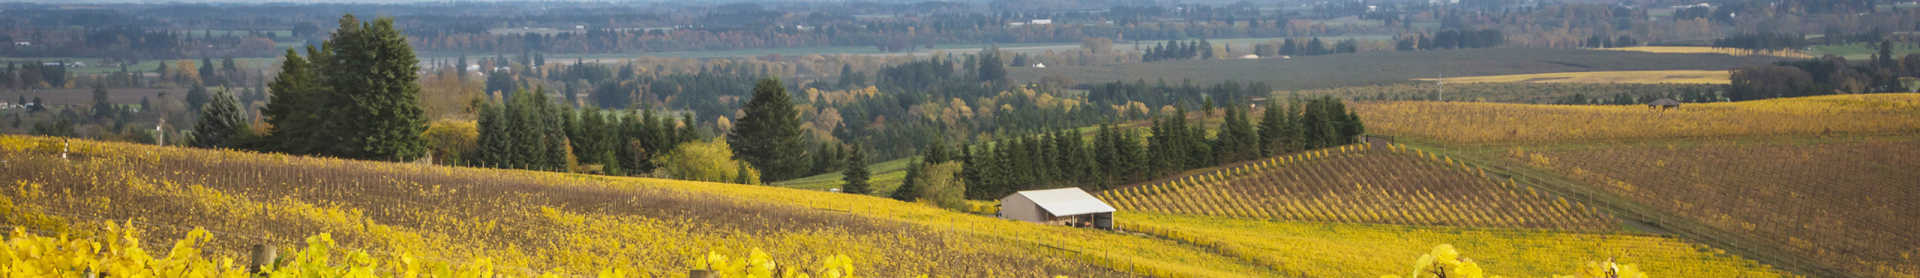 Image for Oregon Wine U.S. content section